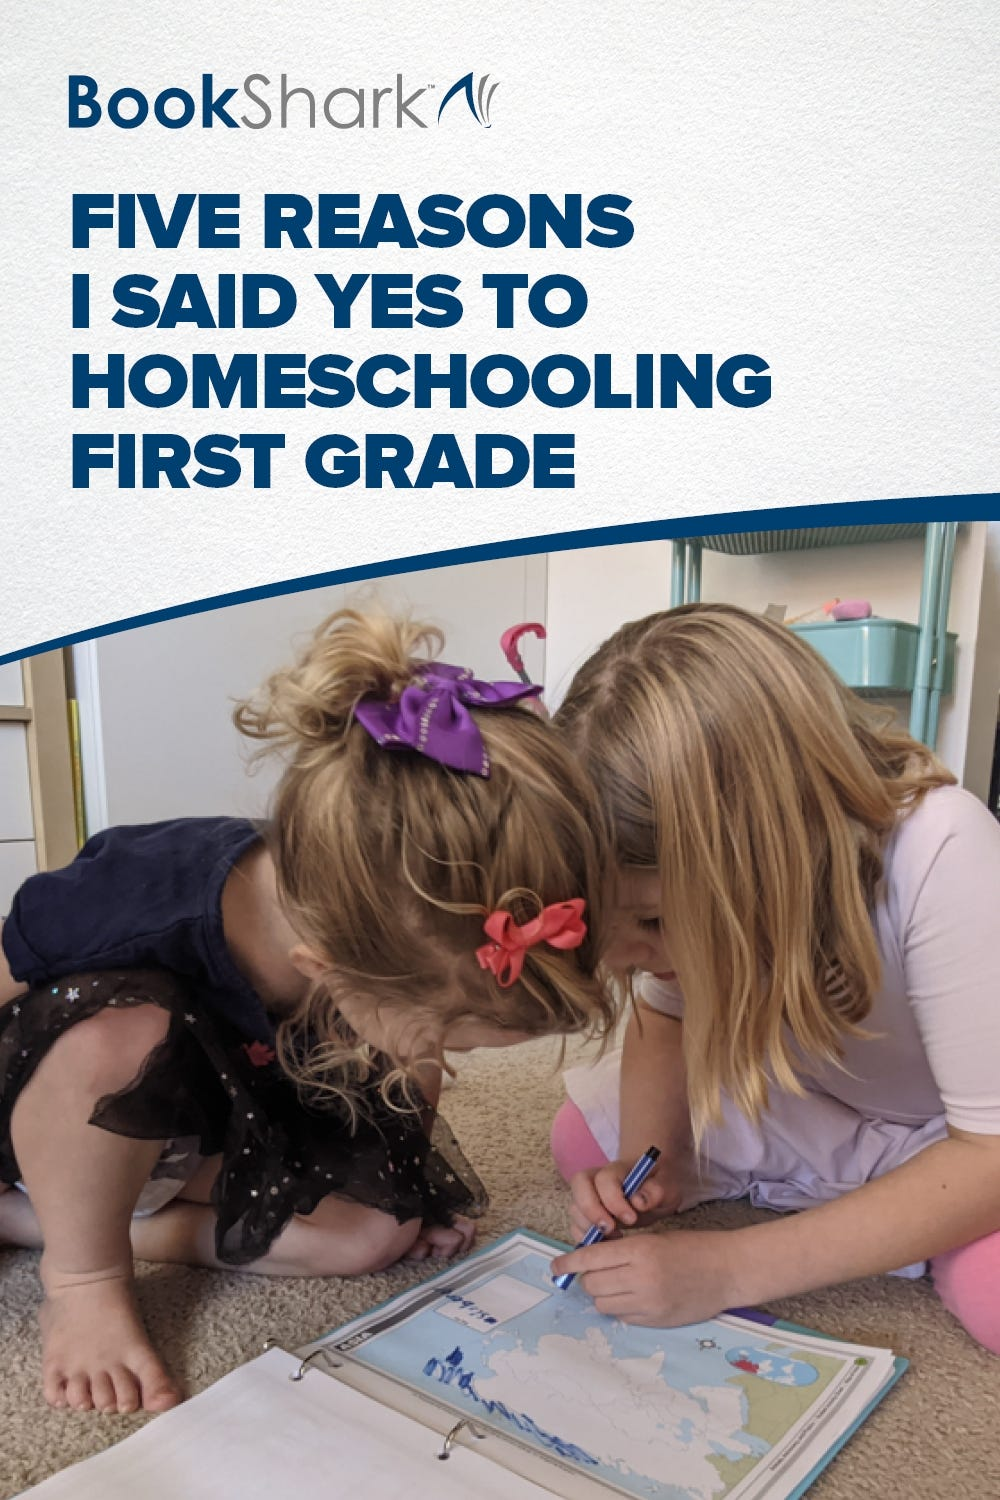 Five Reasons I Said Yes to Homeschooling First Grade